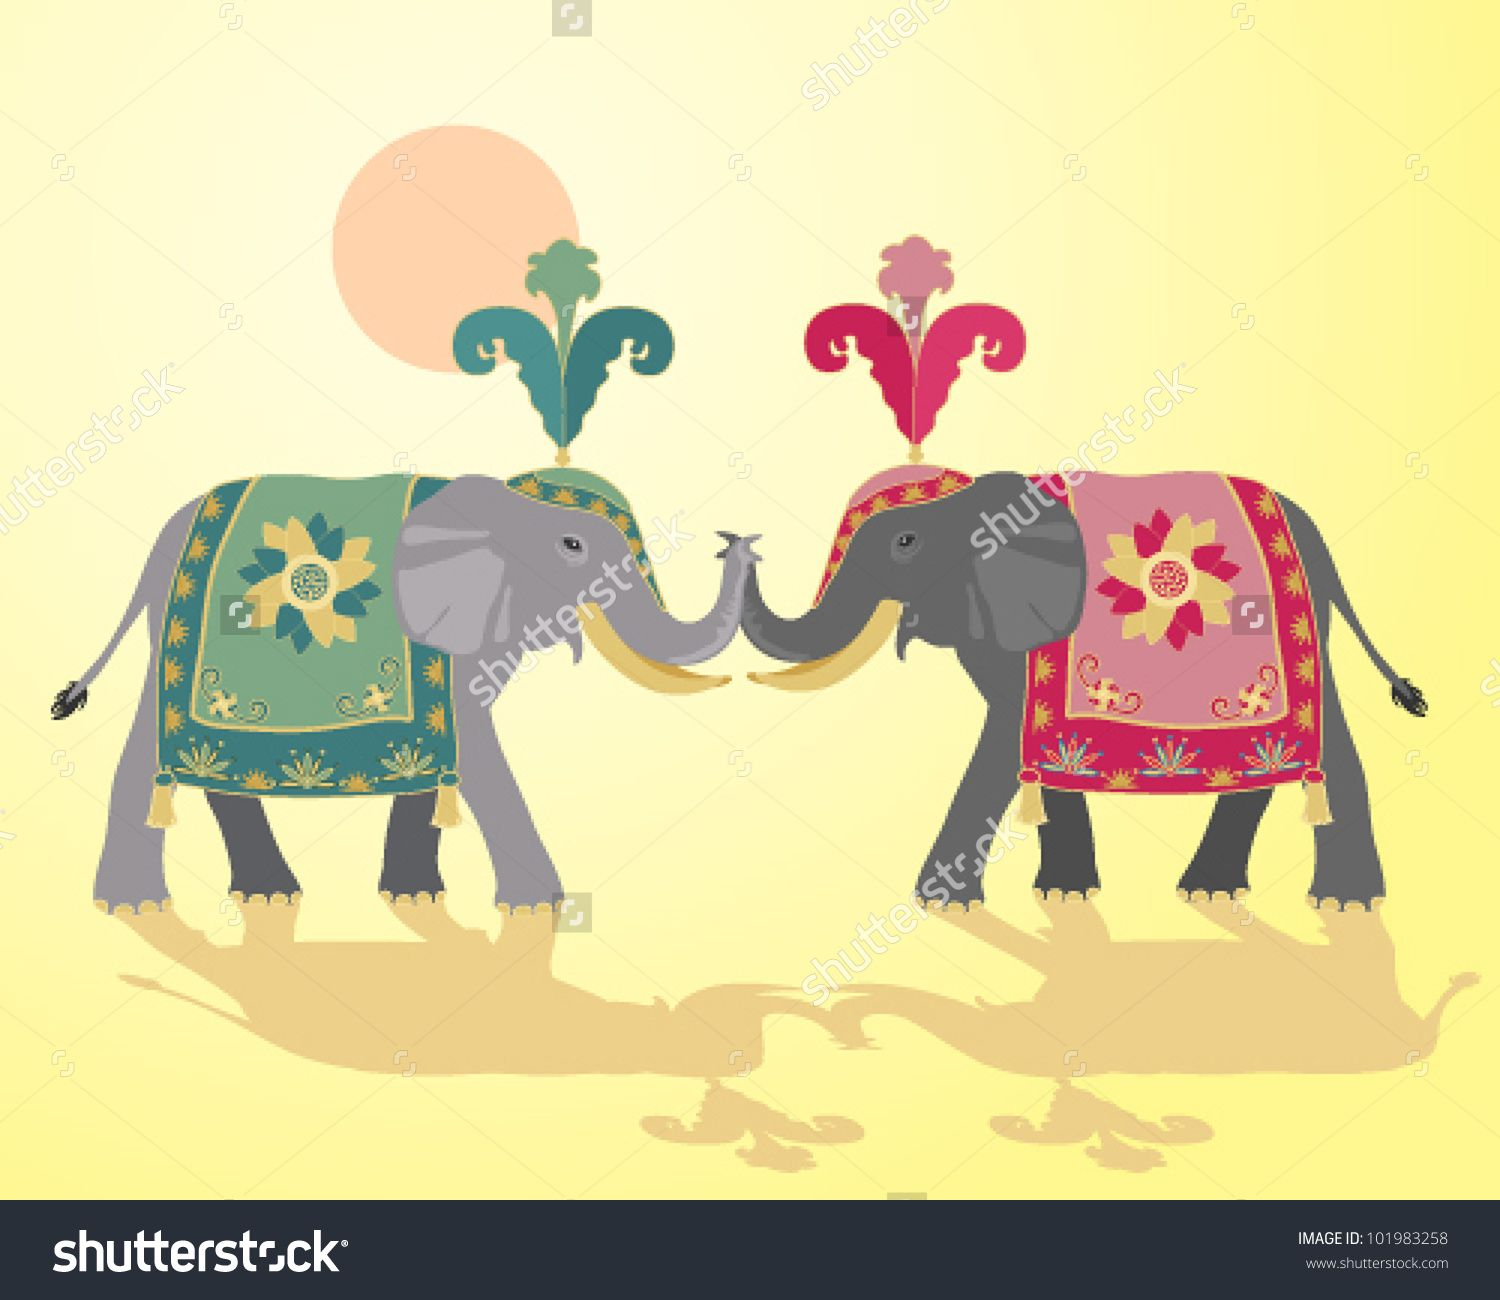 ceremonial decorated african elephants - Google Search ...